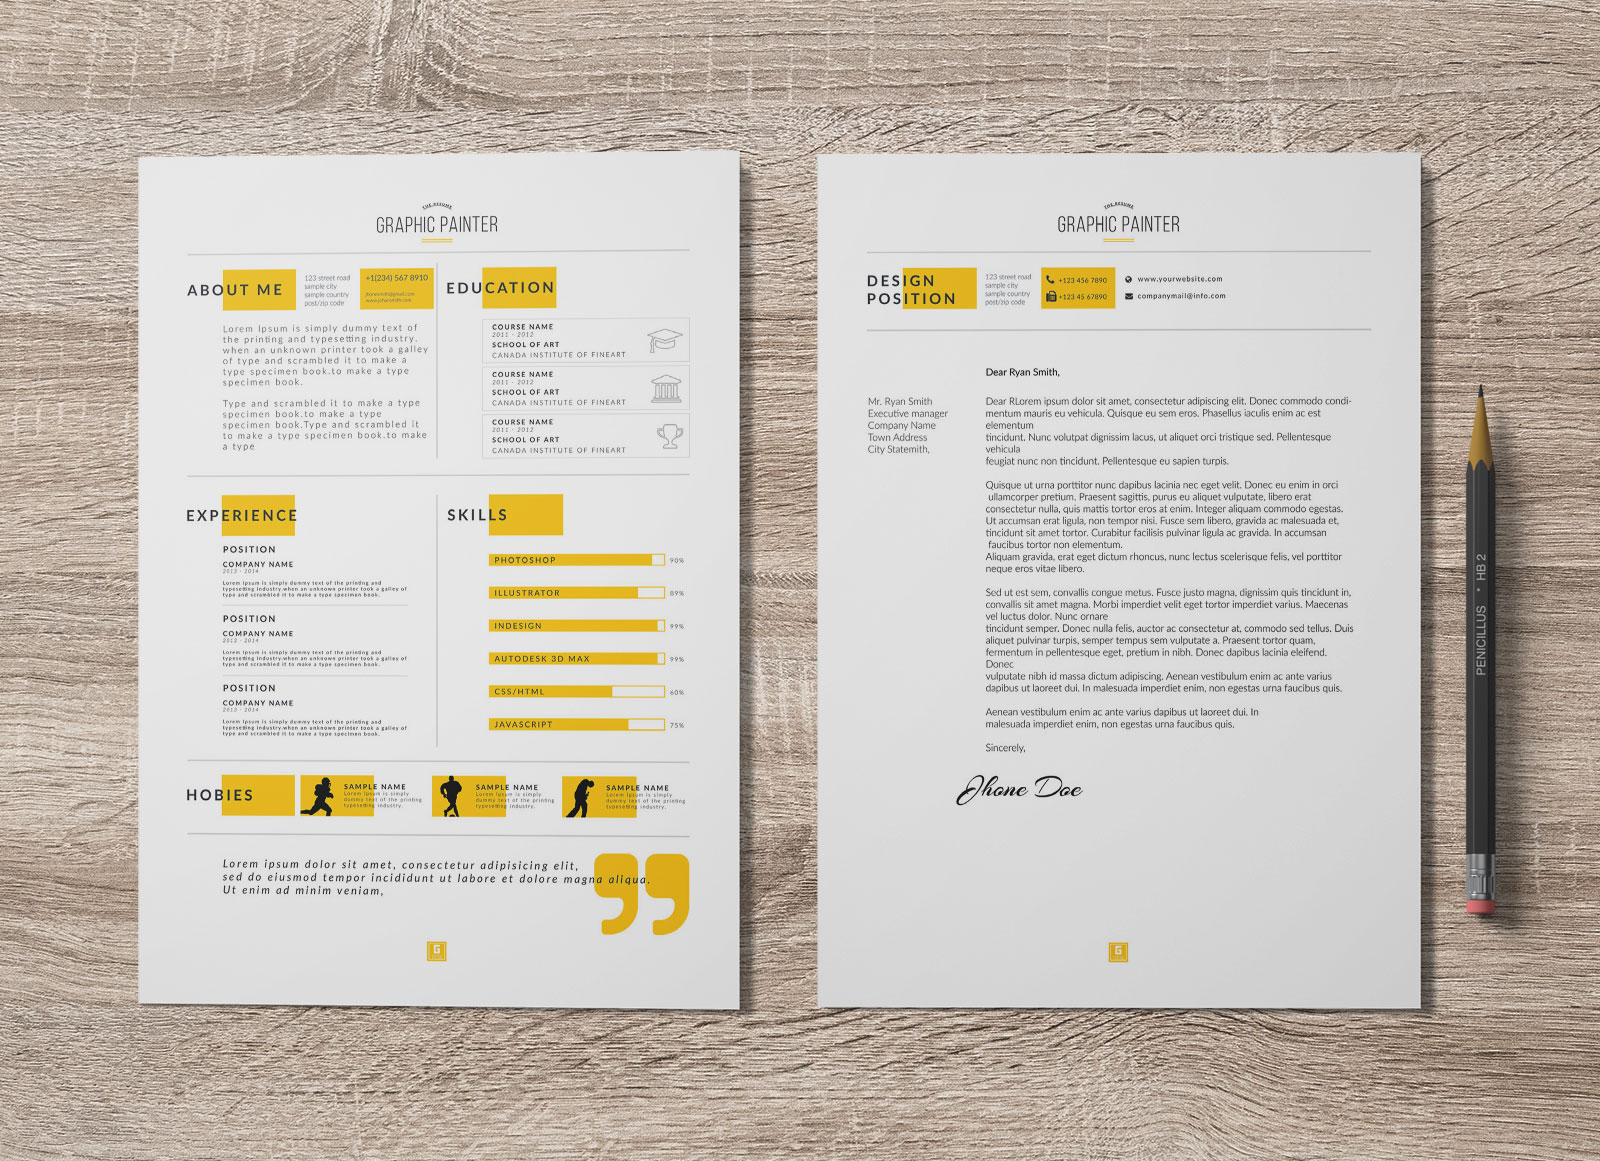 Free-Dark-&-Light-PSD-&-Word-Resume-Template,-Cover-Letter-&-Portfolio-Design (2)